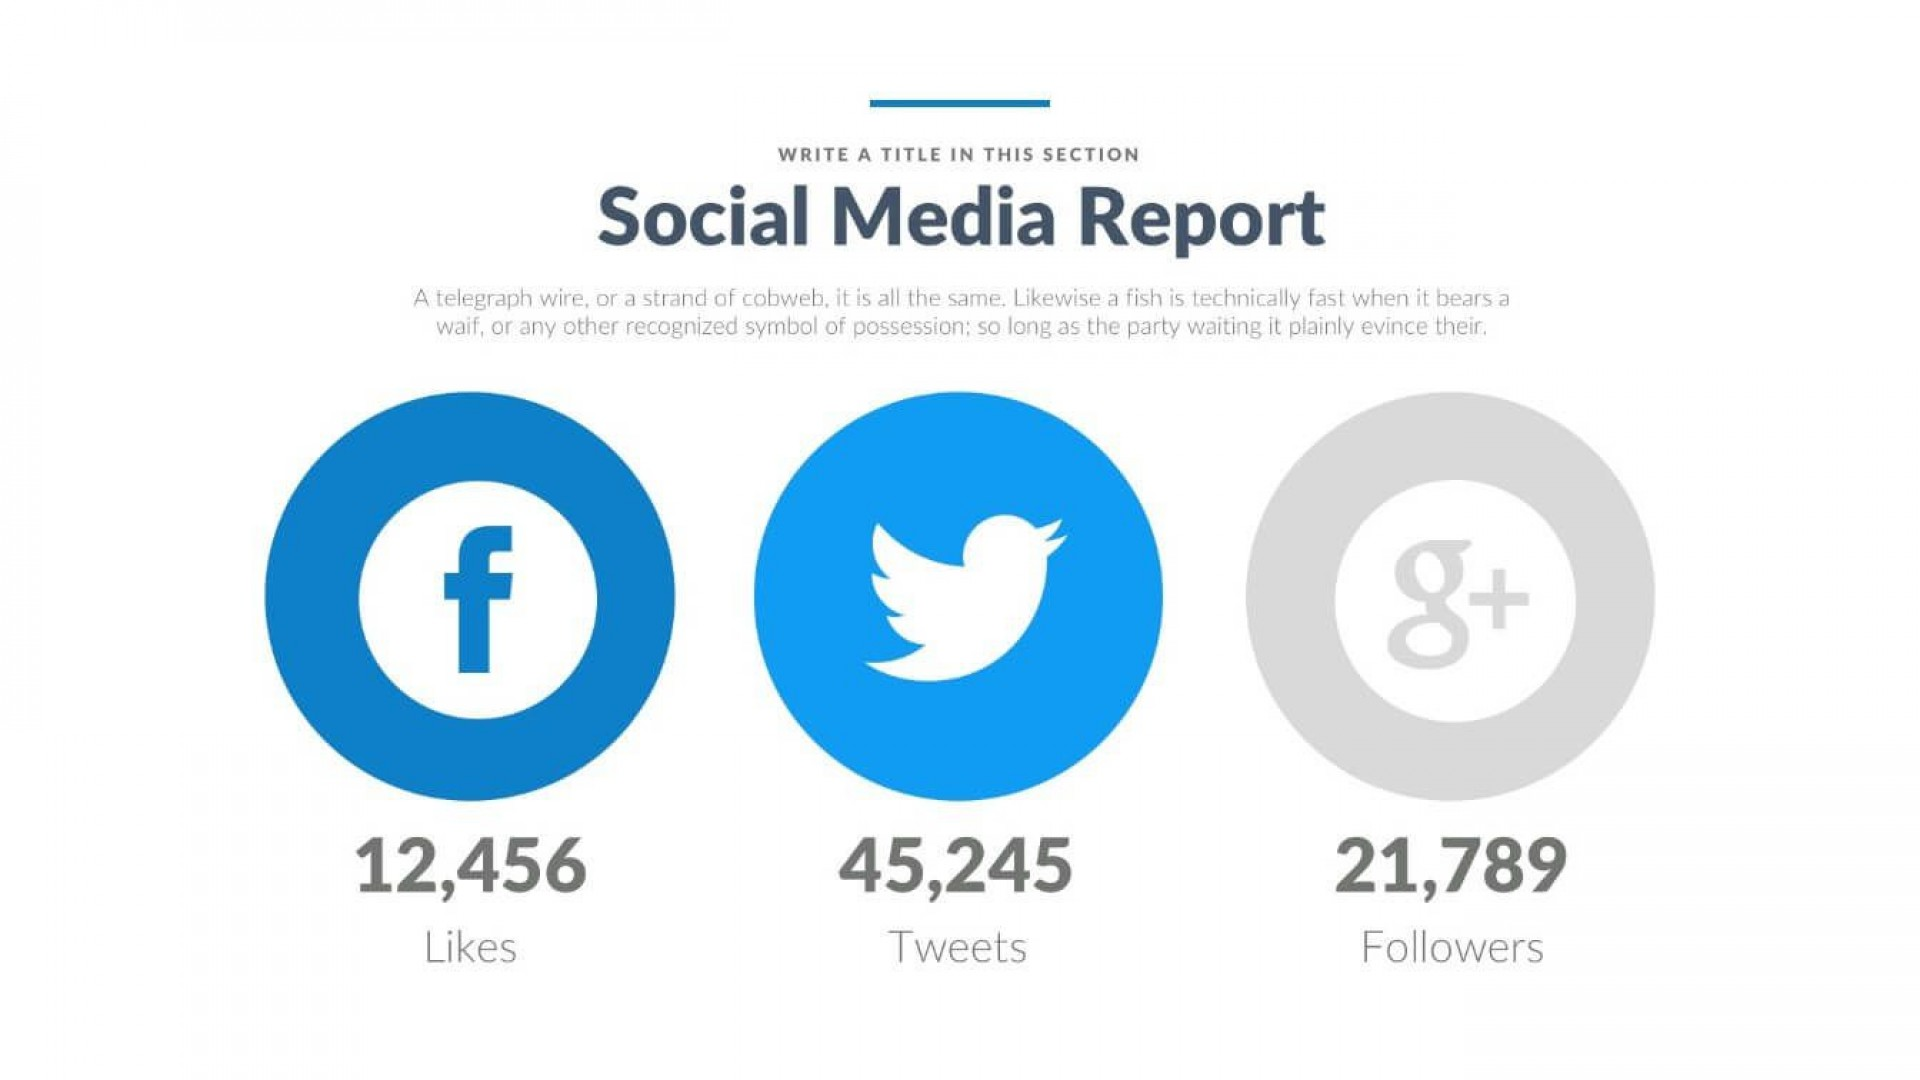 009 Awful Social Media Powerpoint Template Sample  Templates Report Free Social-media-marketing-powerpoint-template1920